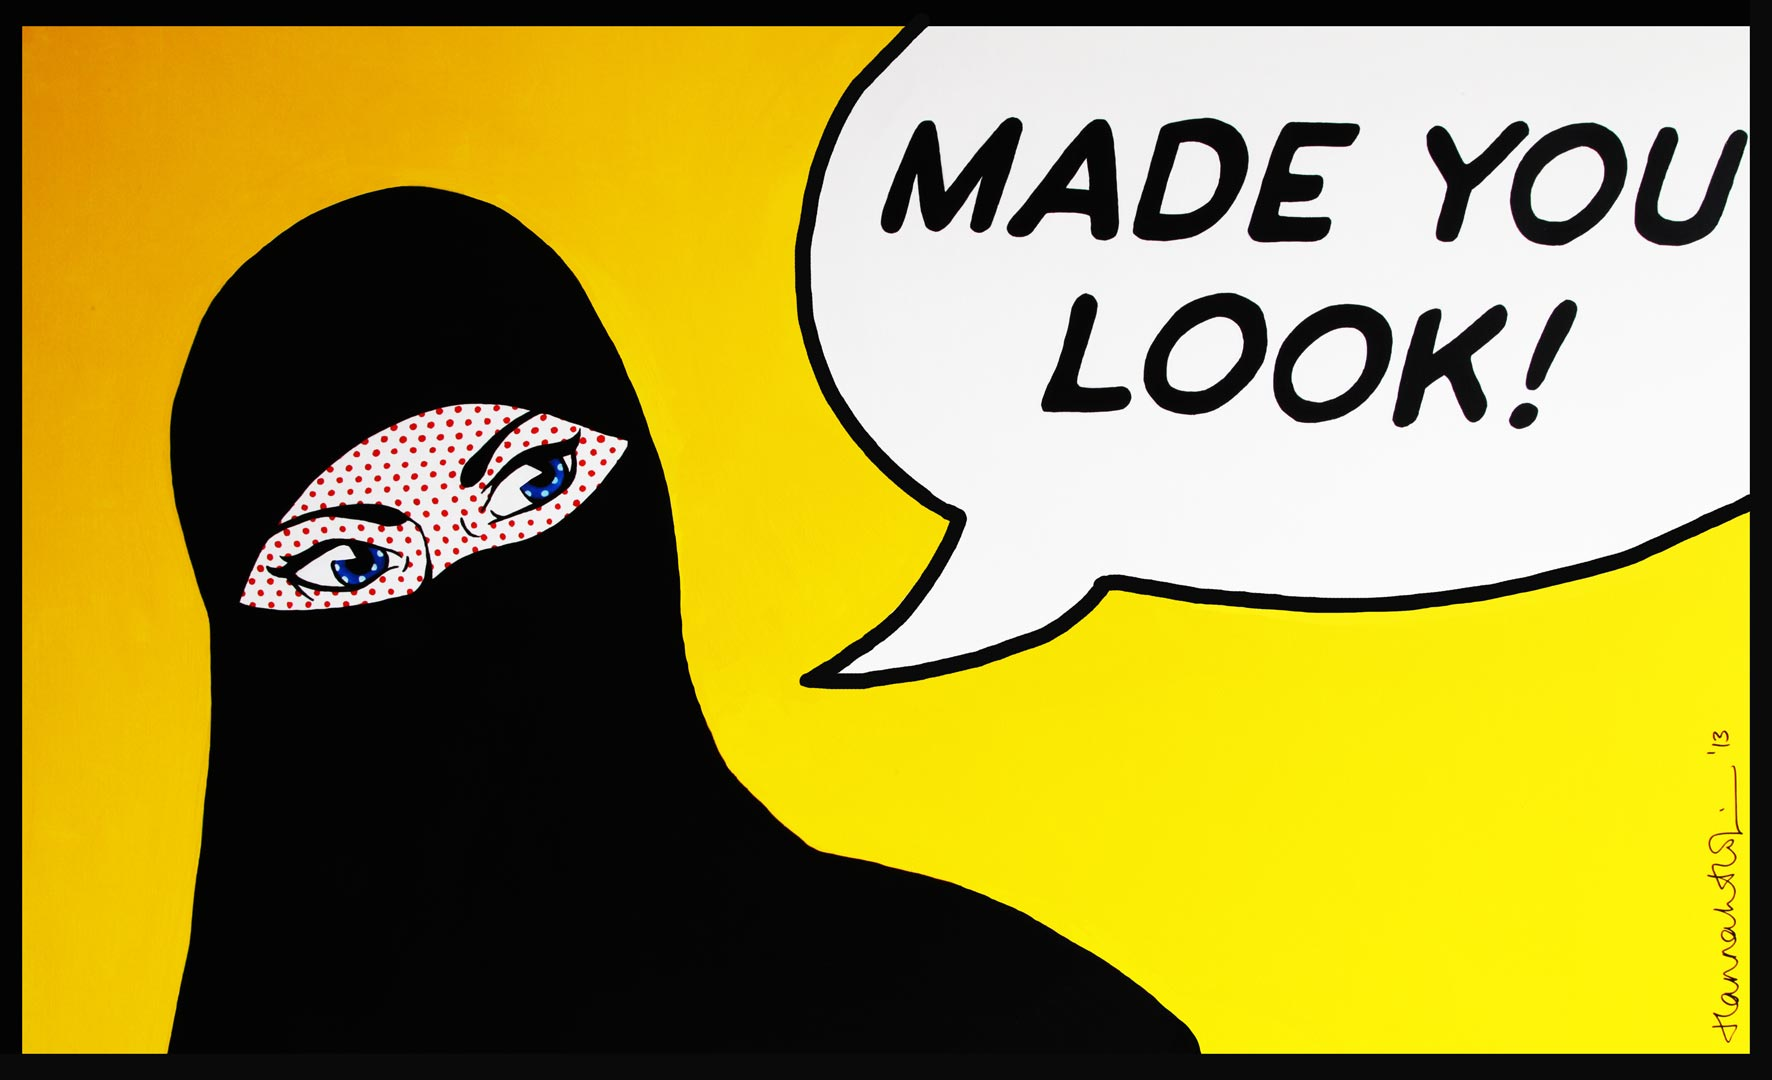 Made You Look! by Hannah Habibi Hopkin (c)